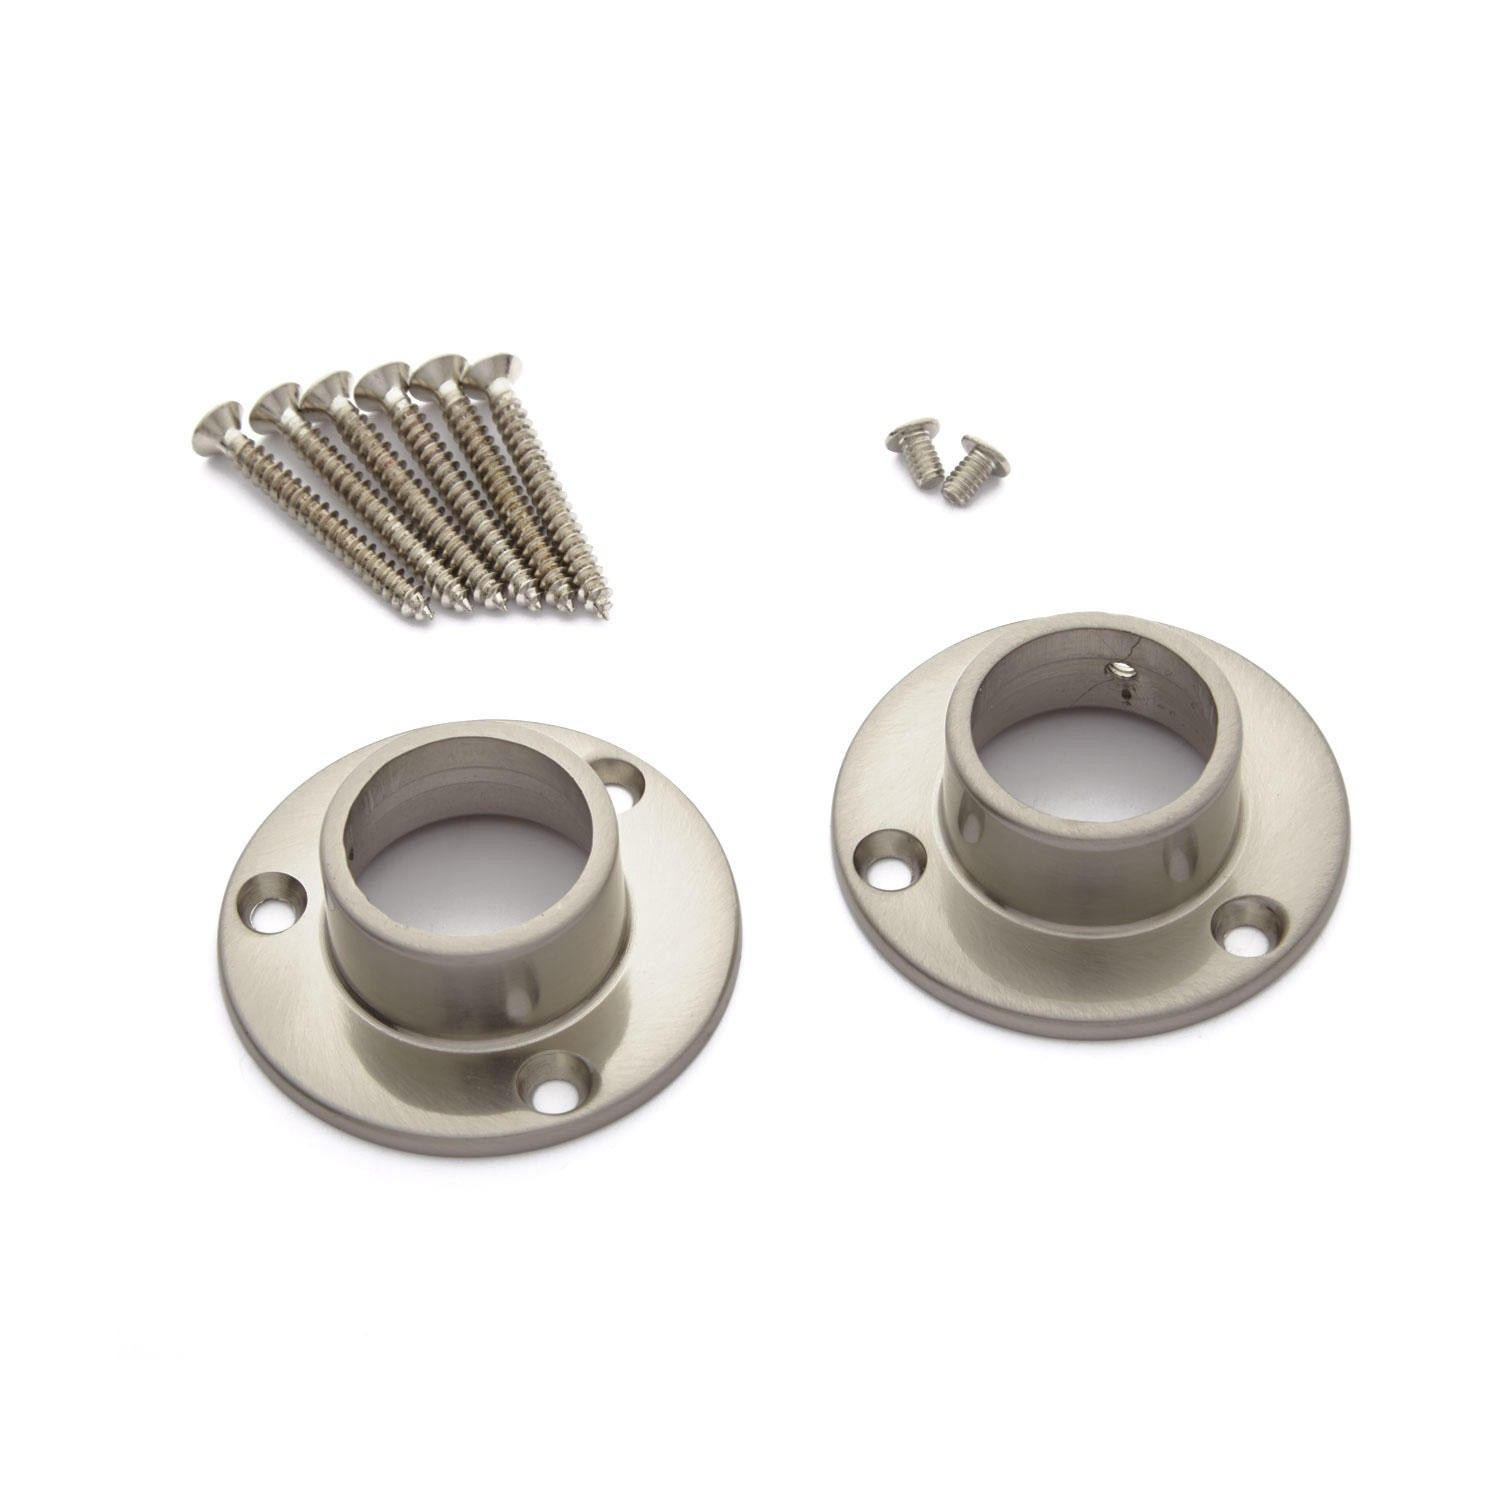 Straight Shower Curtain Rod Flanges In Set Of 2 In Chrome Zinc